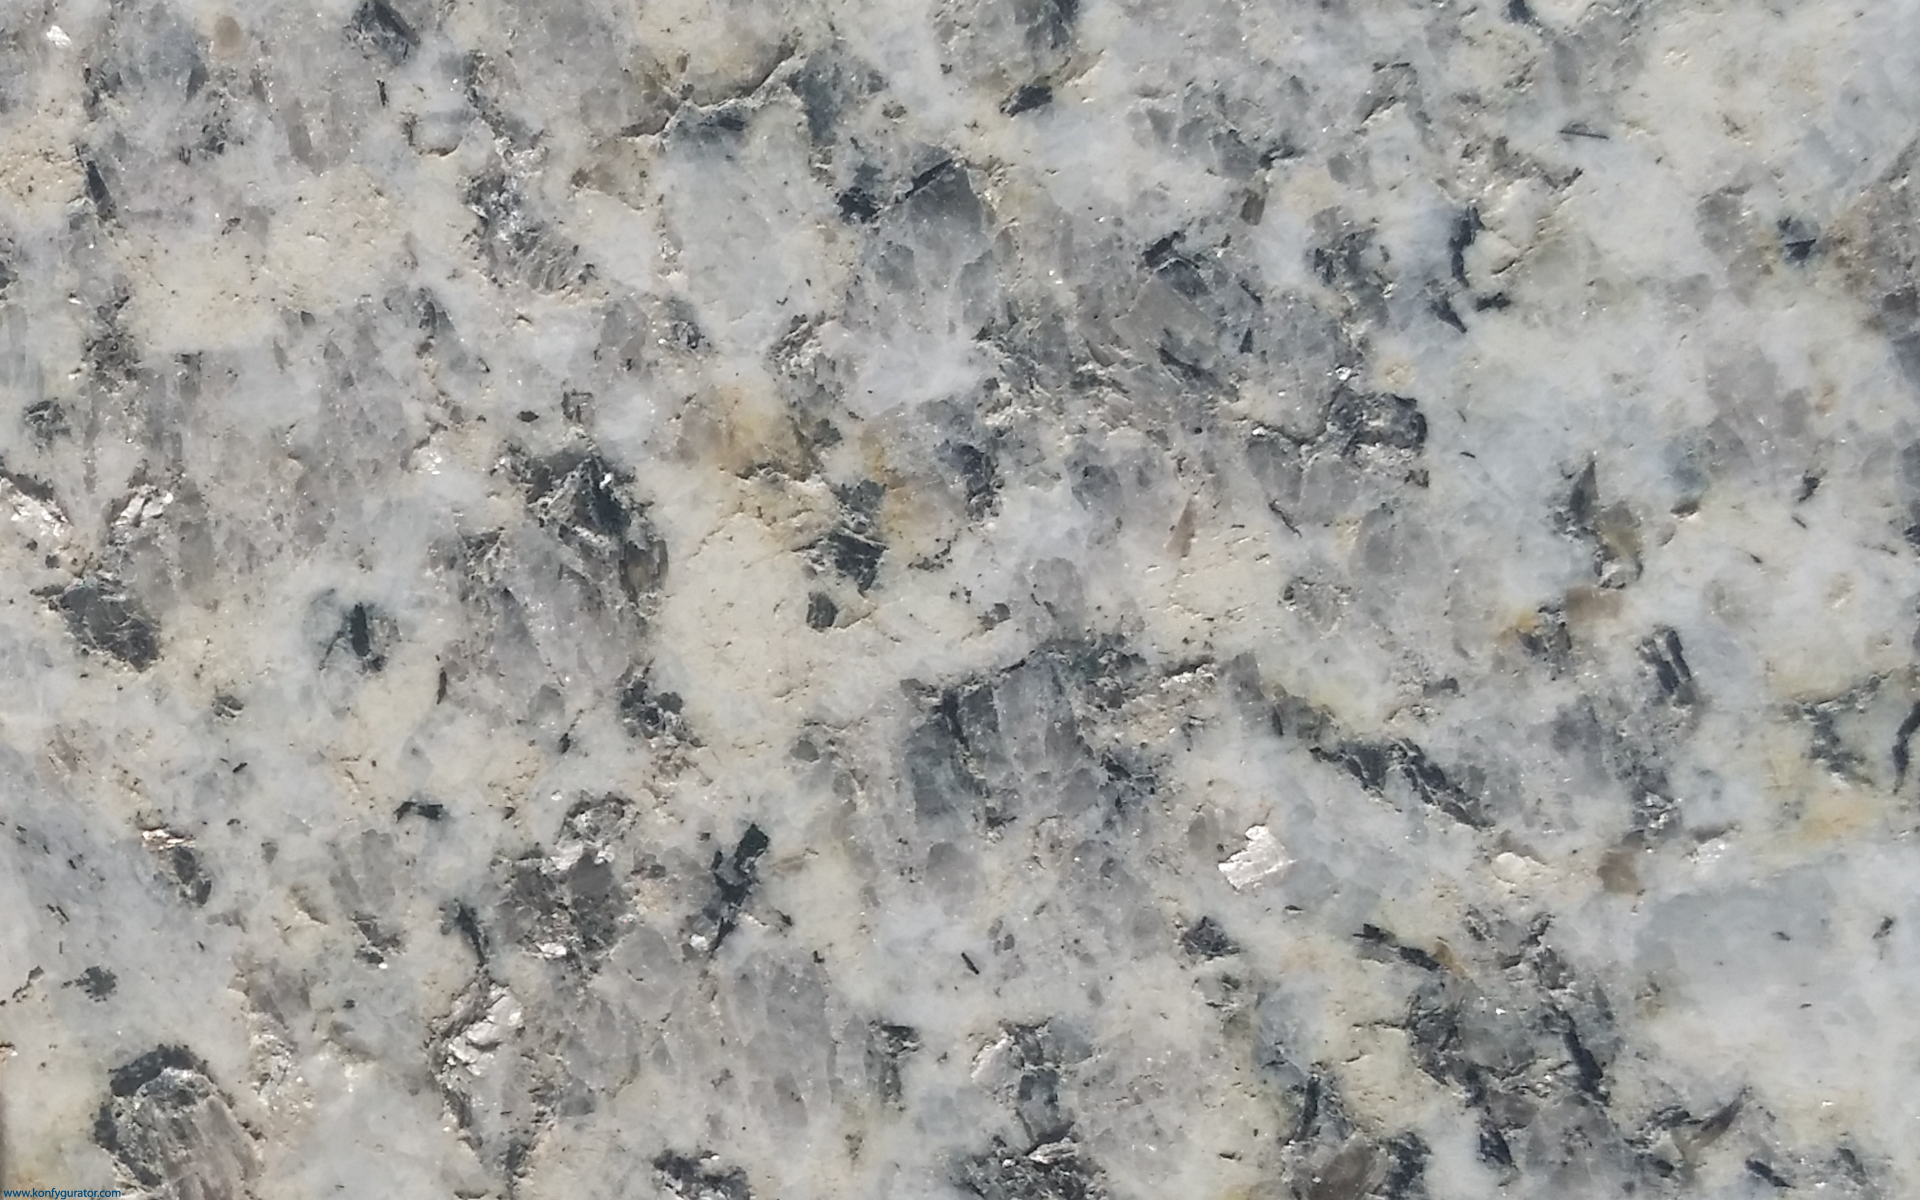 HD Wallpapers - Textures - bright, gray, granite